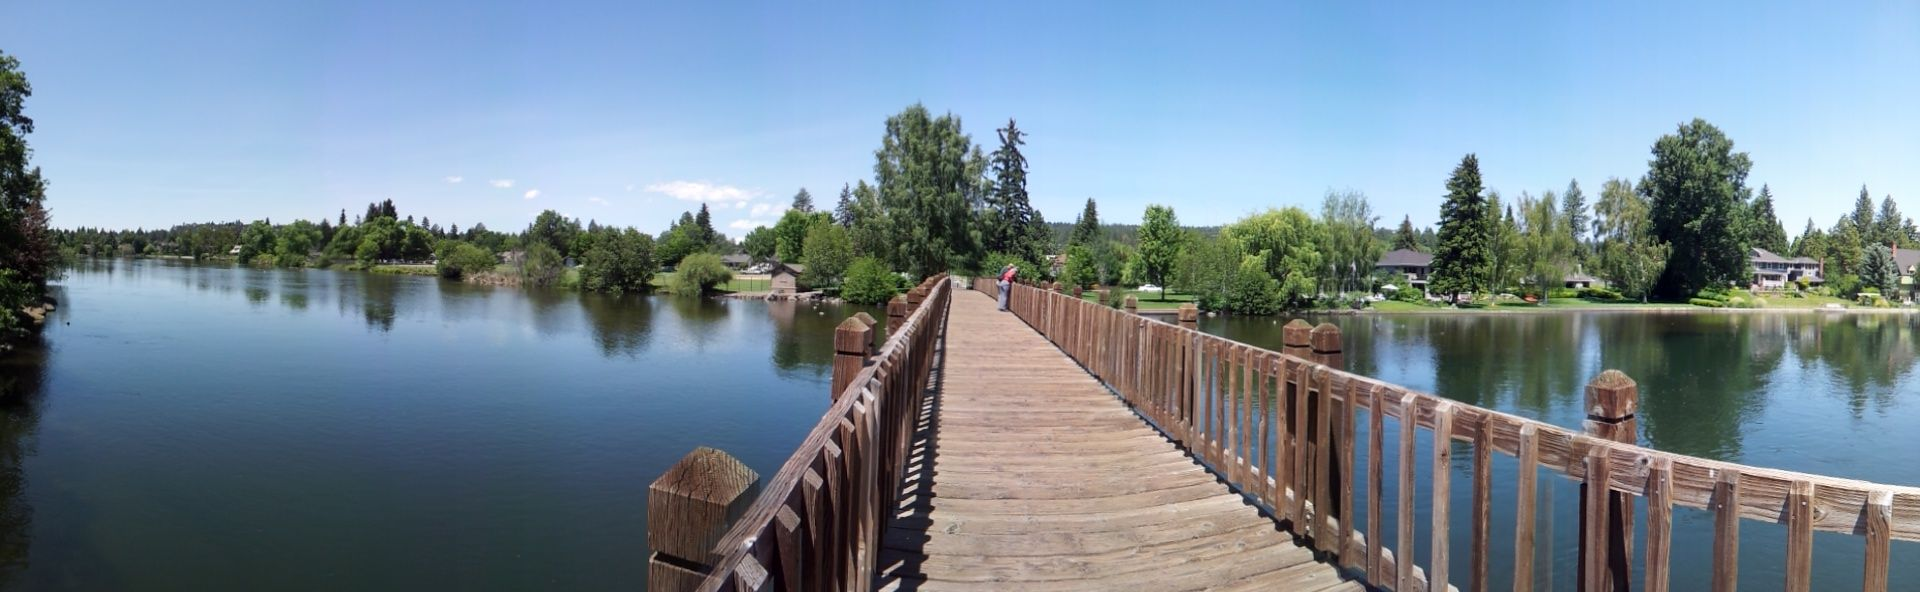 Deschutes_River_at_Drake_Park,_Bend,_Oregon_2012